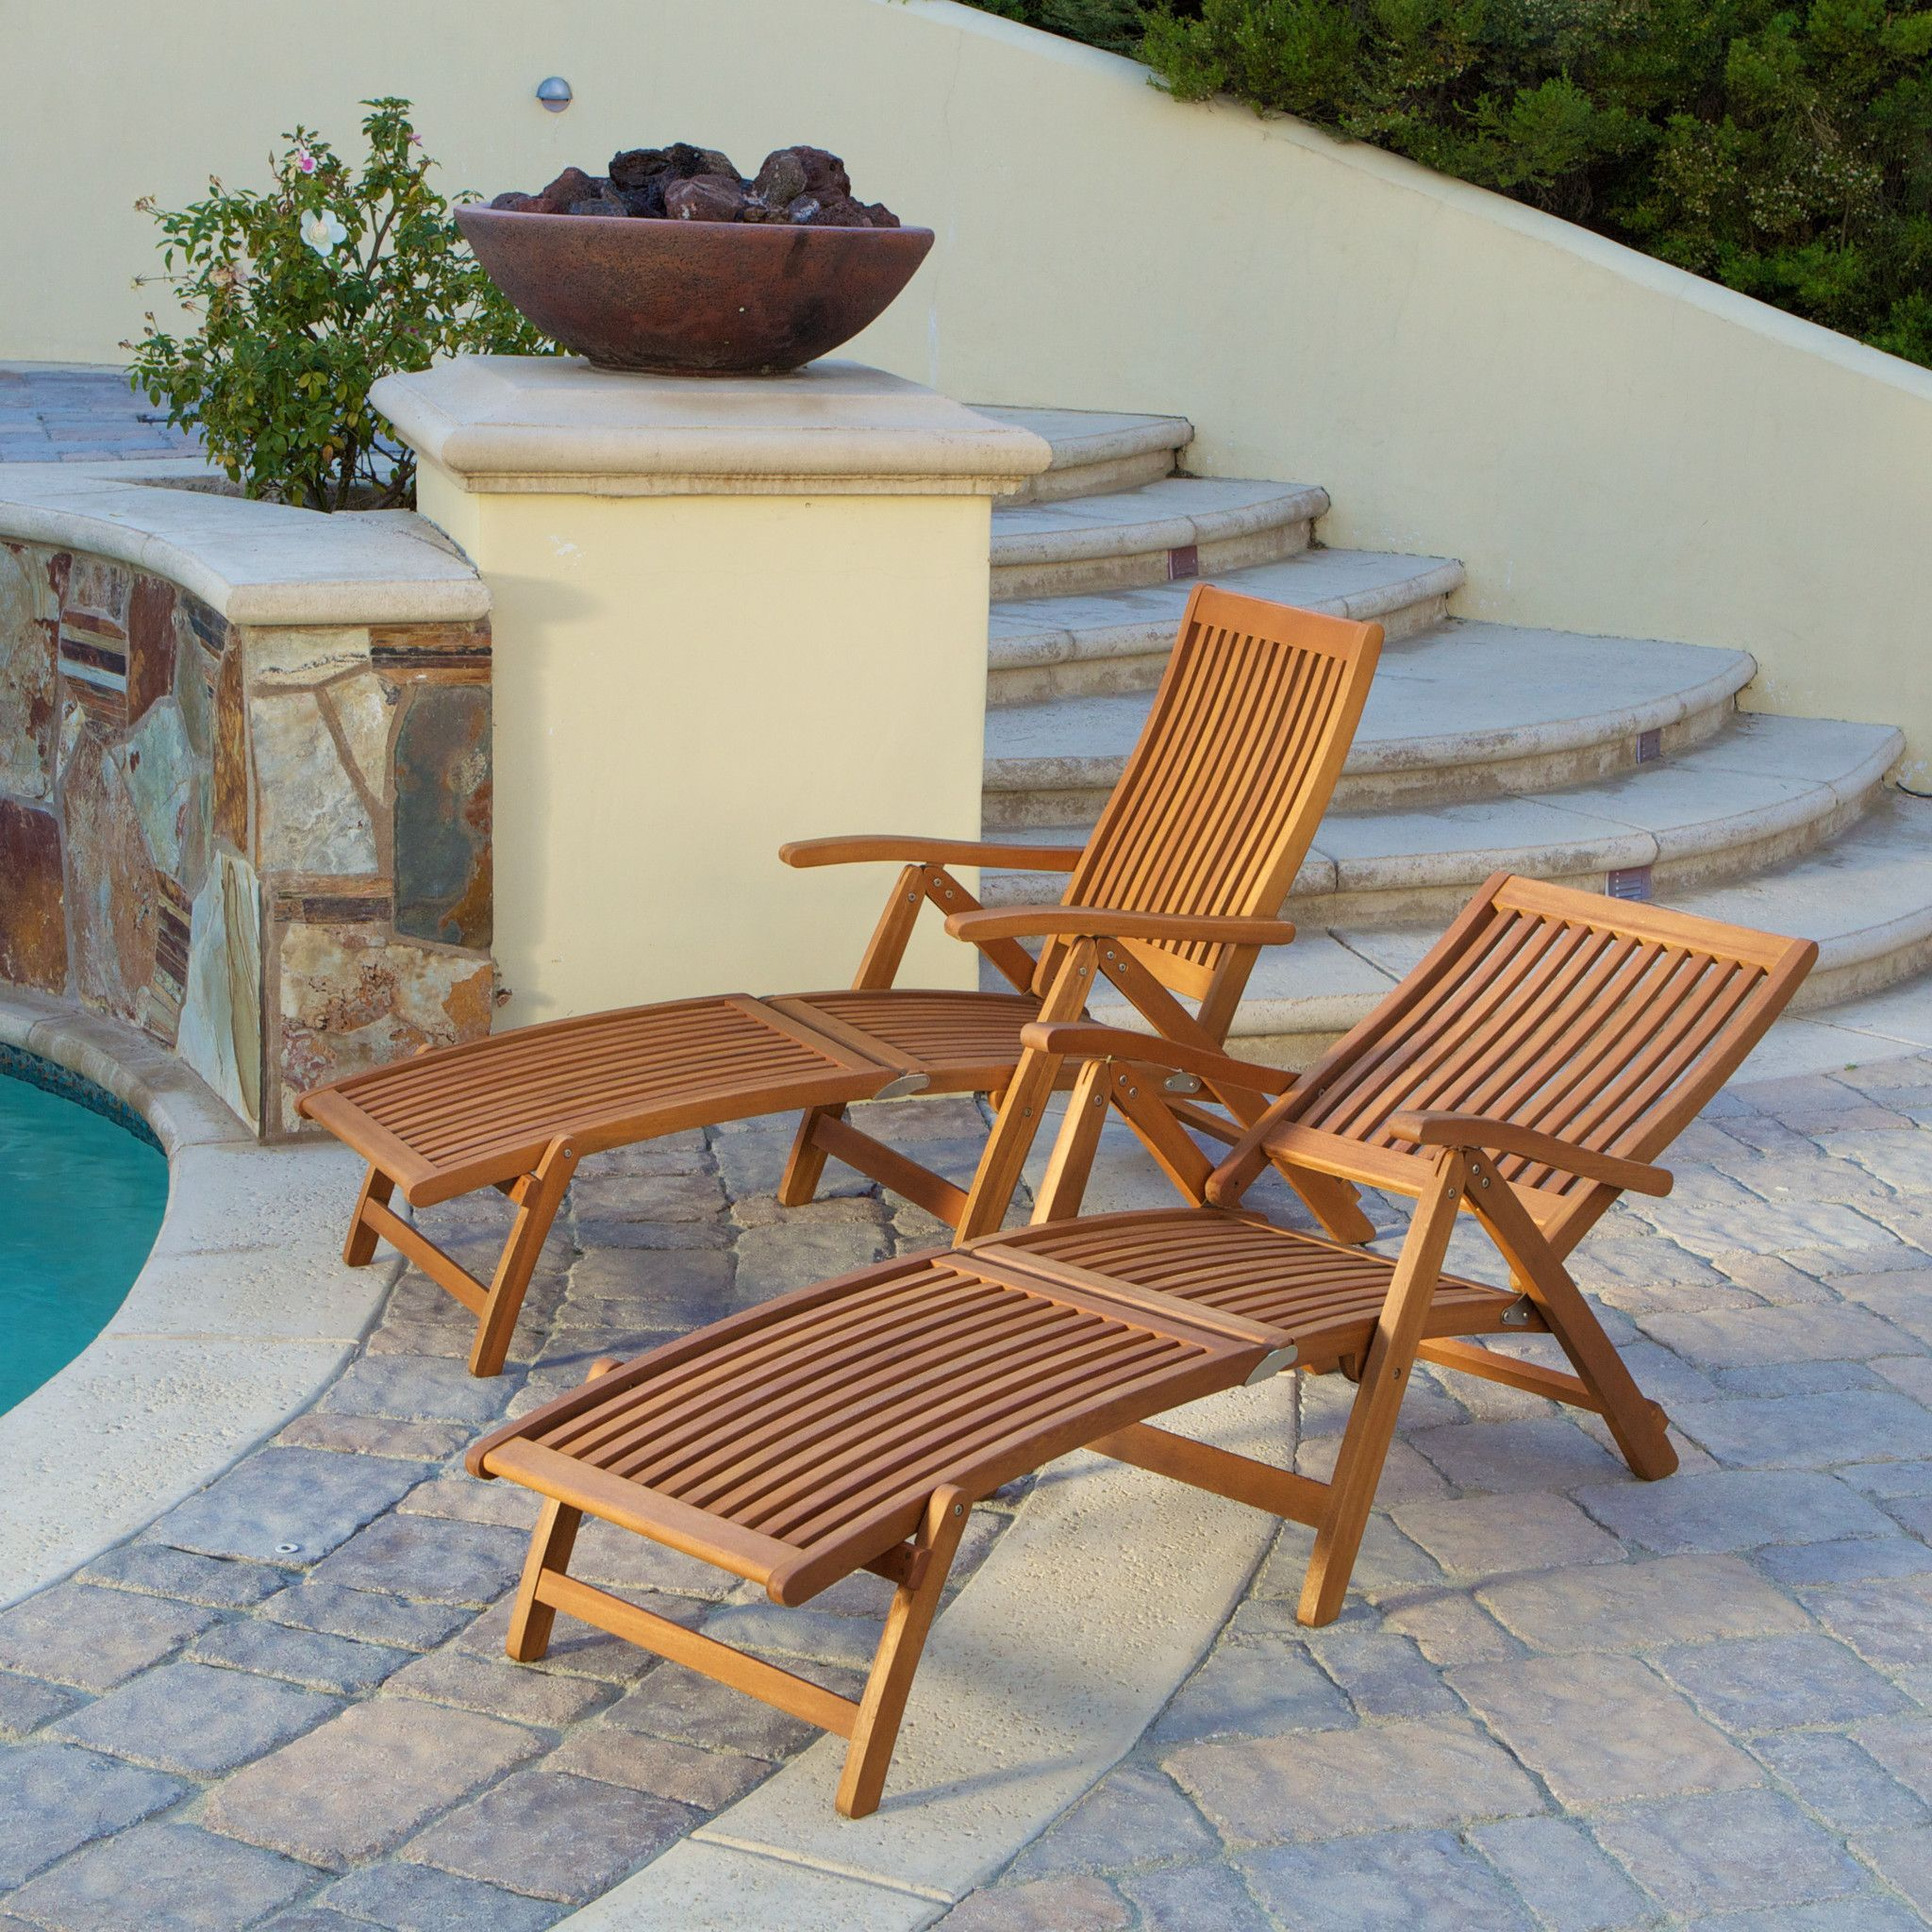 217304 - Telouse Light Brown Hard Wood Foldable Lounge Chair